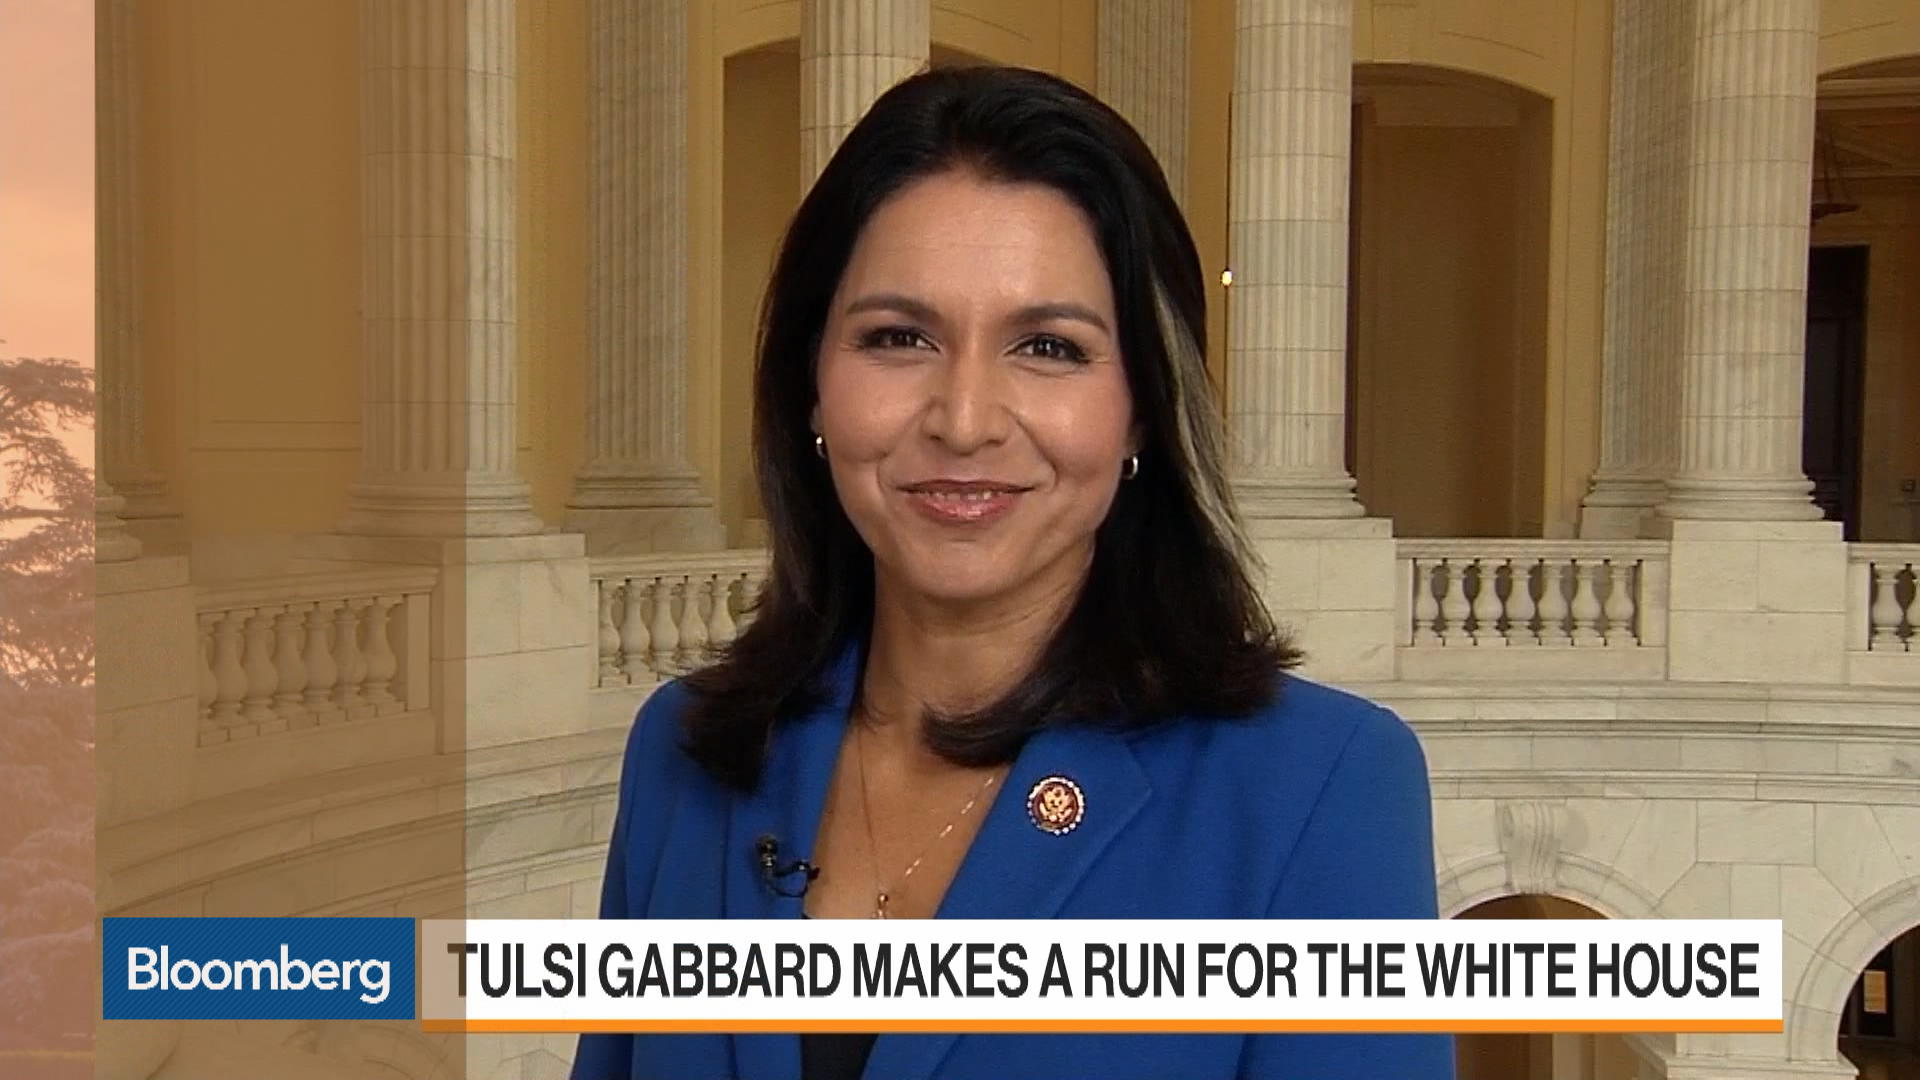 Trade Wars Can Easily Escalate into Hot Wars, Rep. Tulsi Gabbard Says